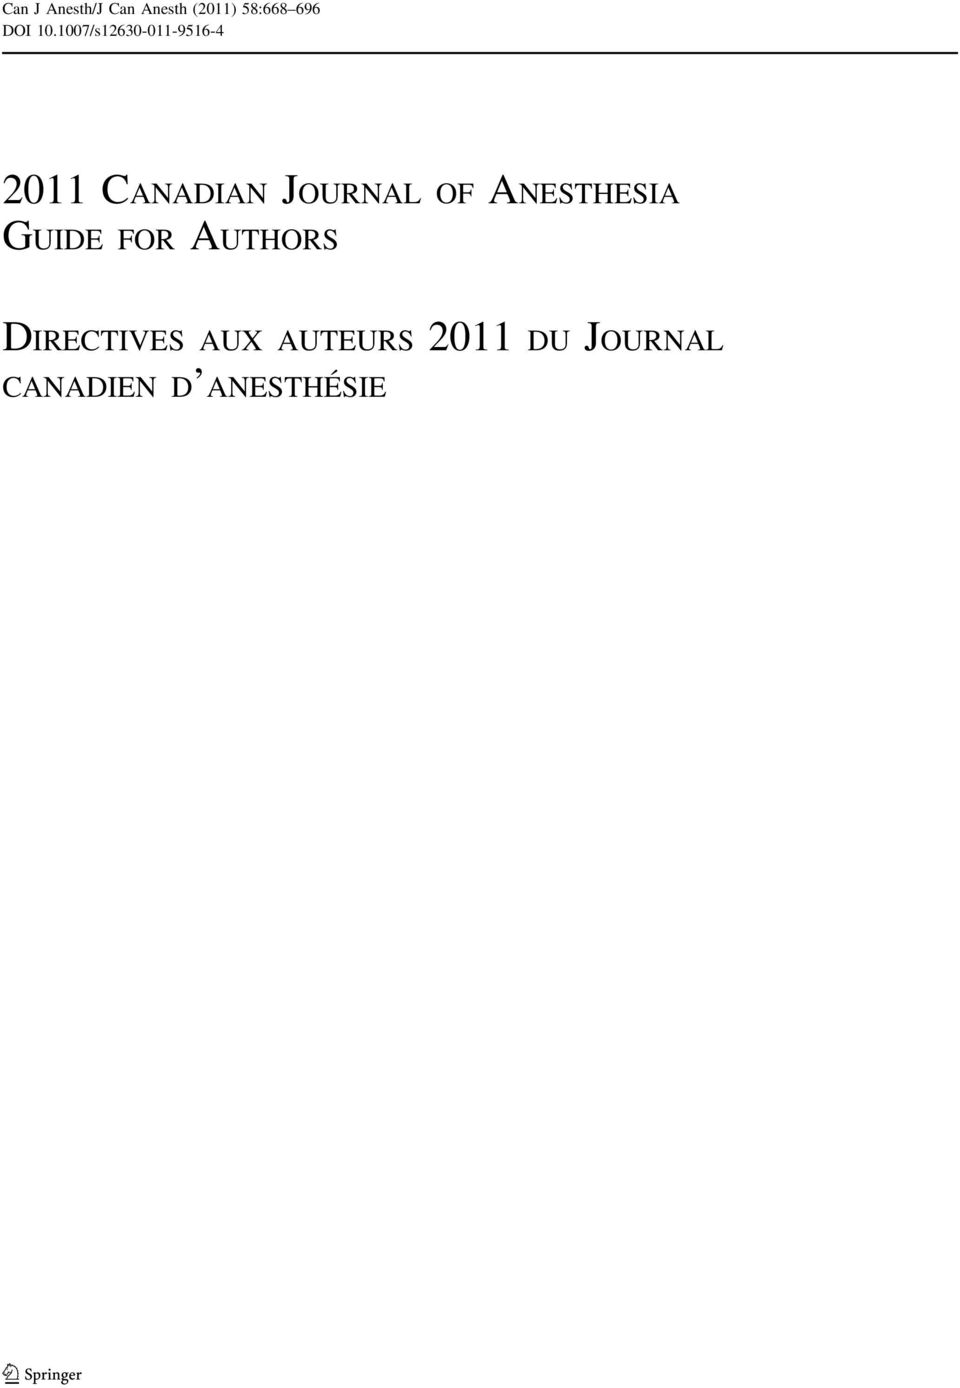 1007/s12630-011-9516-4 2011 CANADIAN JOURNAL